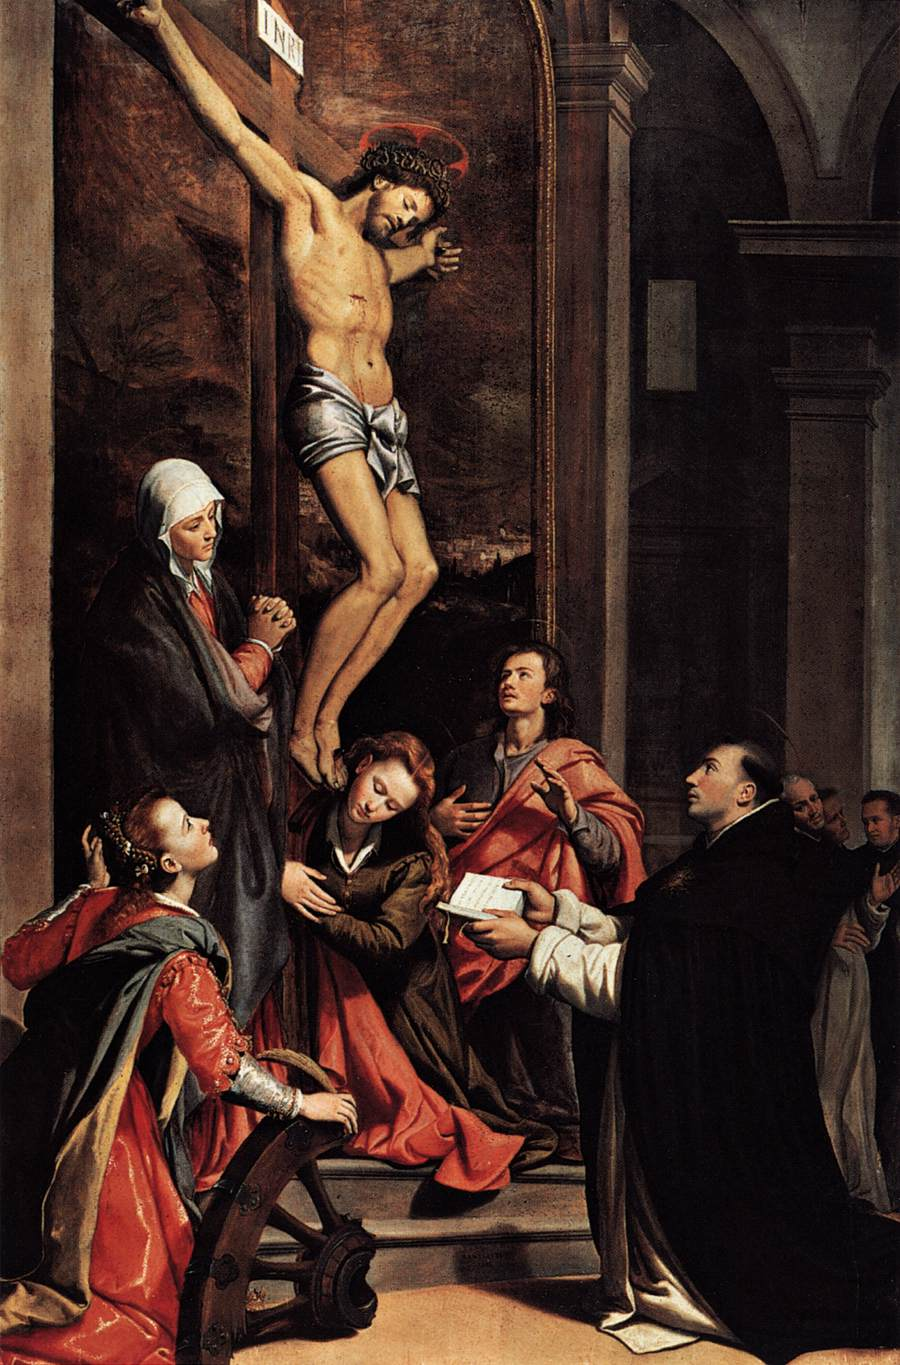 new liturgical movement the feast of st thomas aquinas the vision of saint thomas by santi di tito in the church of san marco one of the two n churches in florence